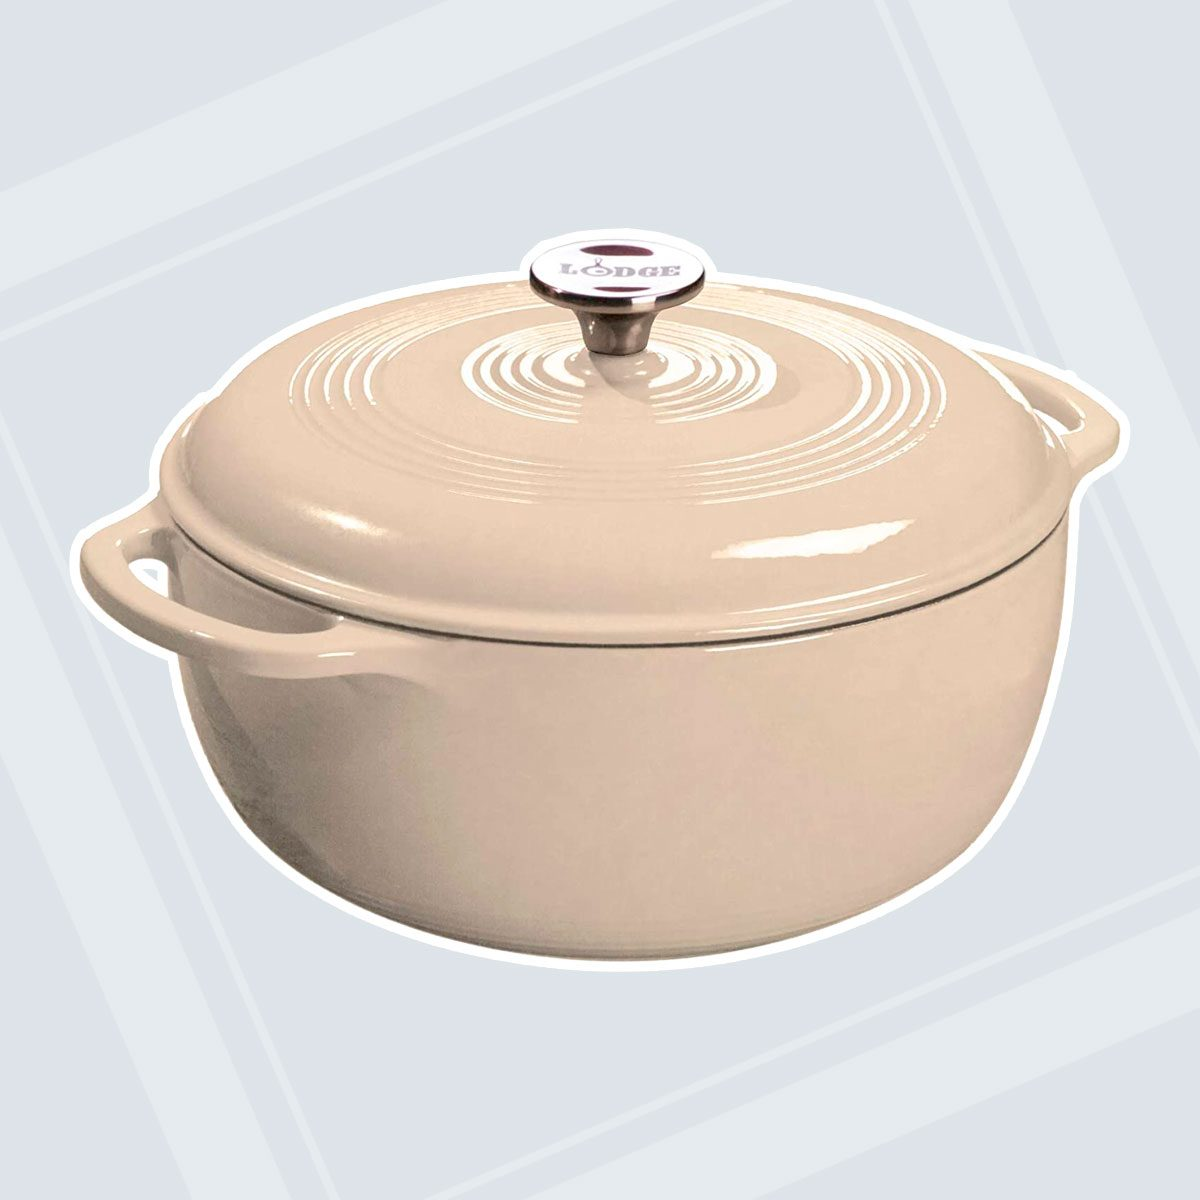 Lodge Porcelain Enameled 6-Qt. Dutch Oven